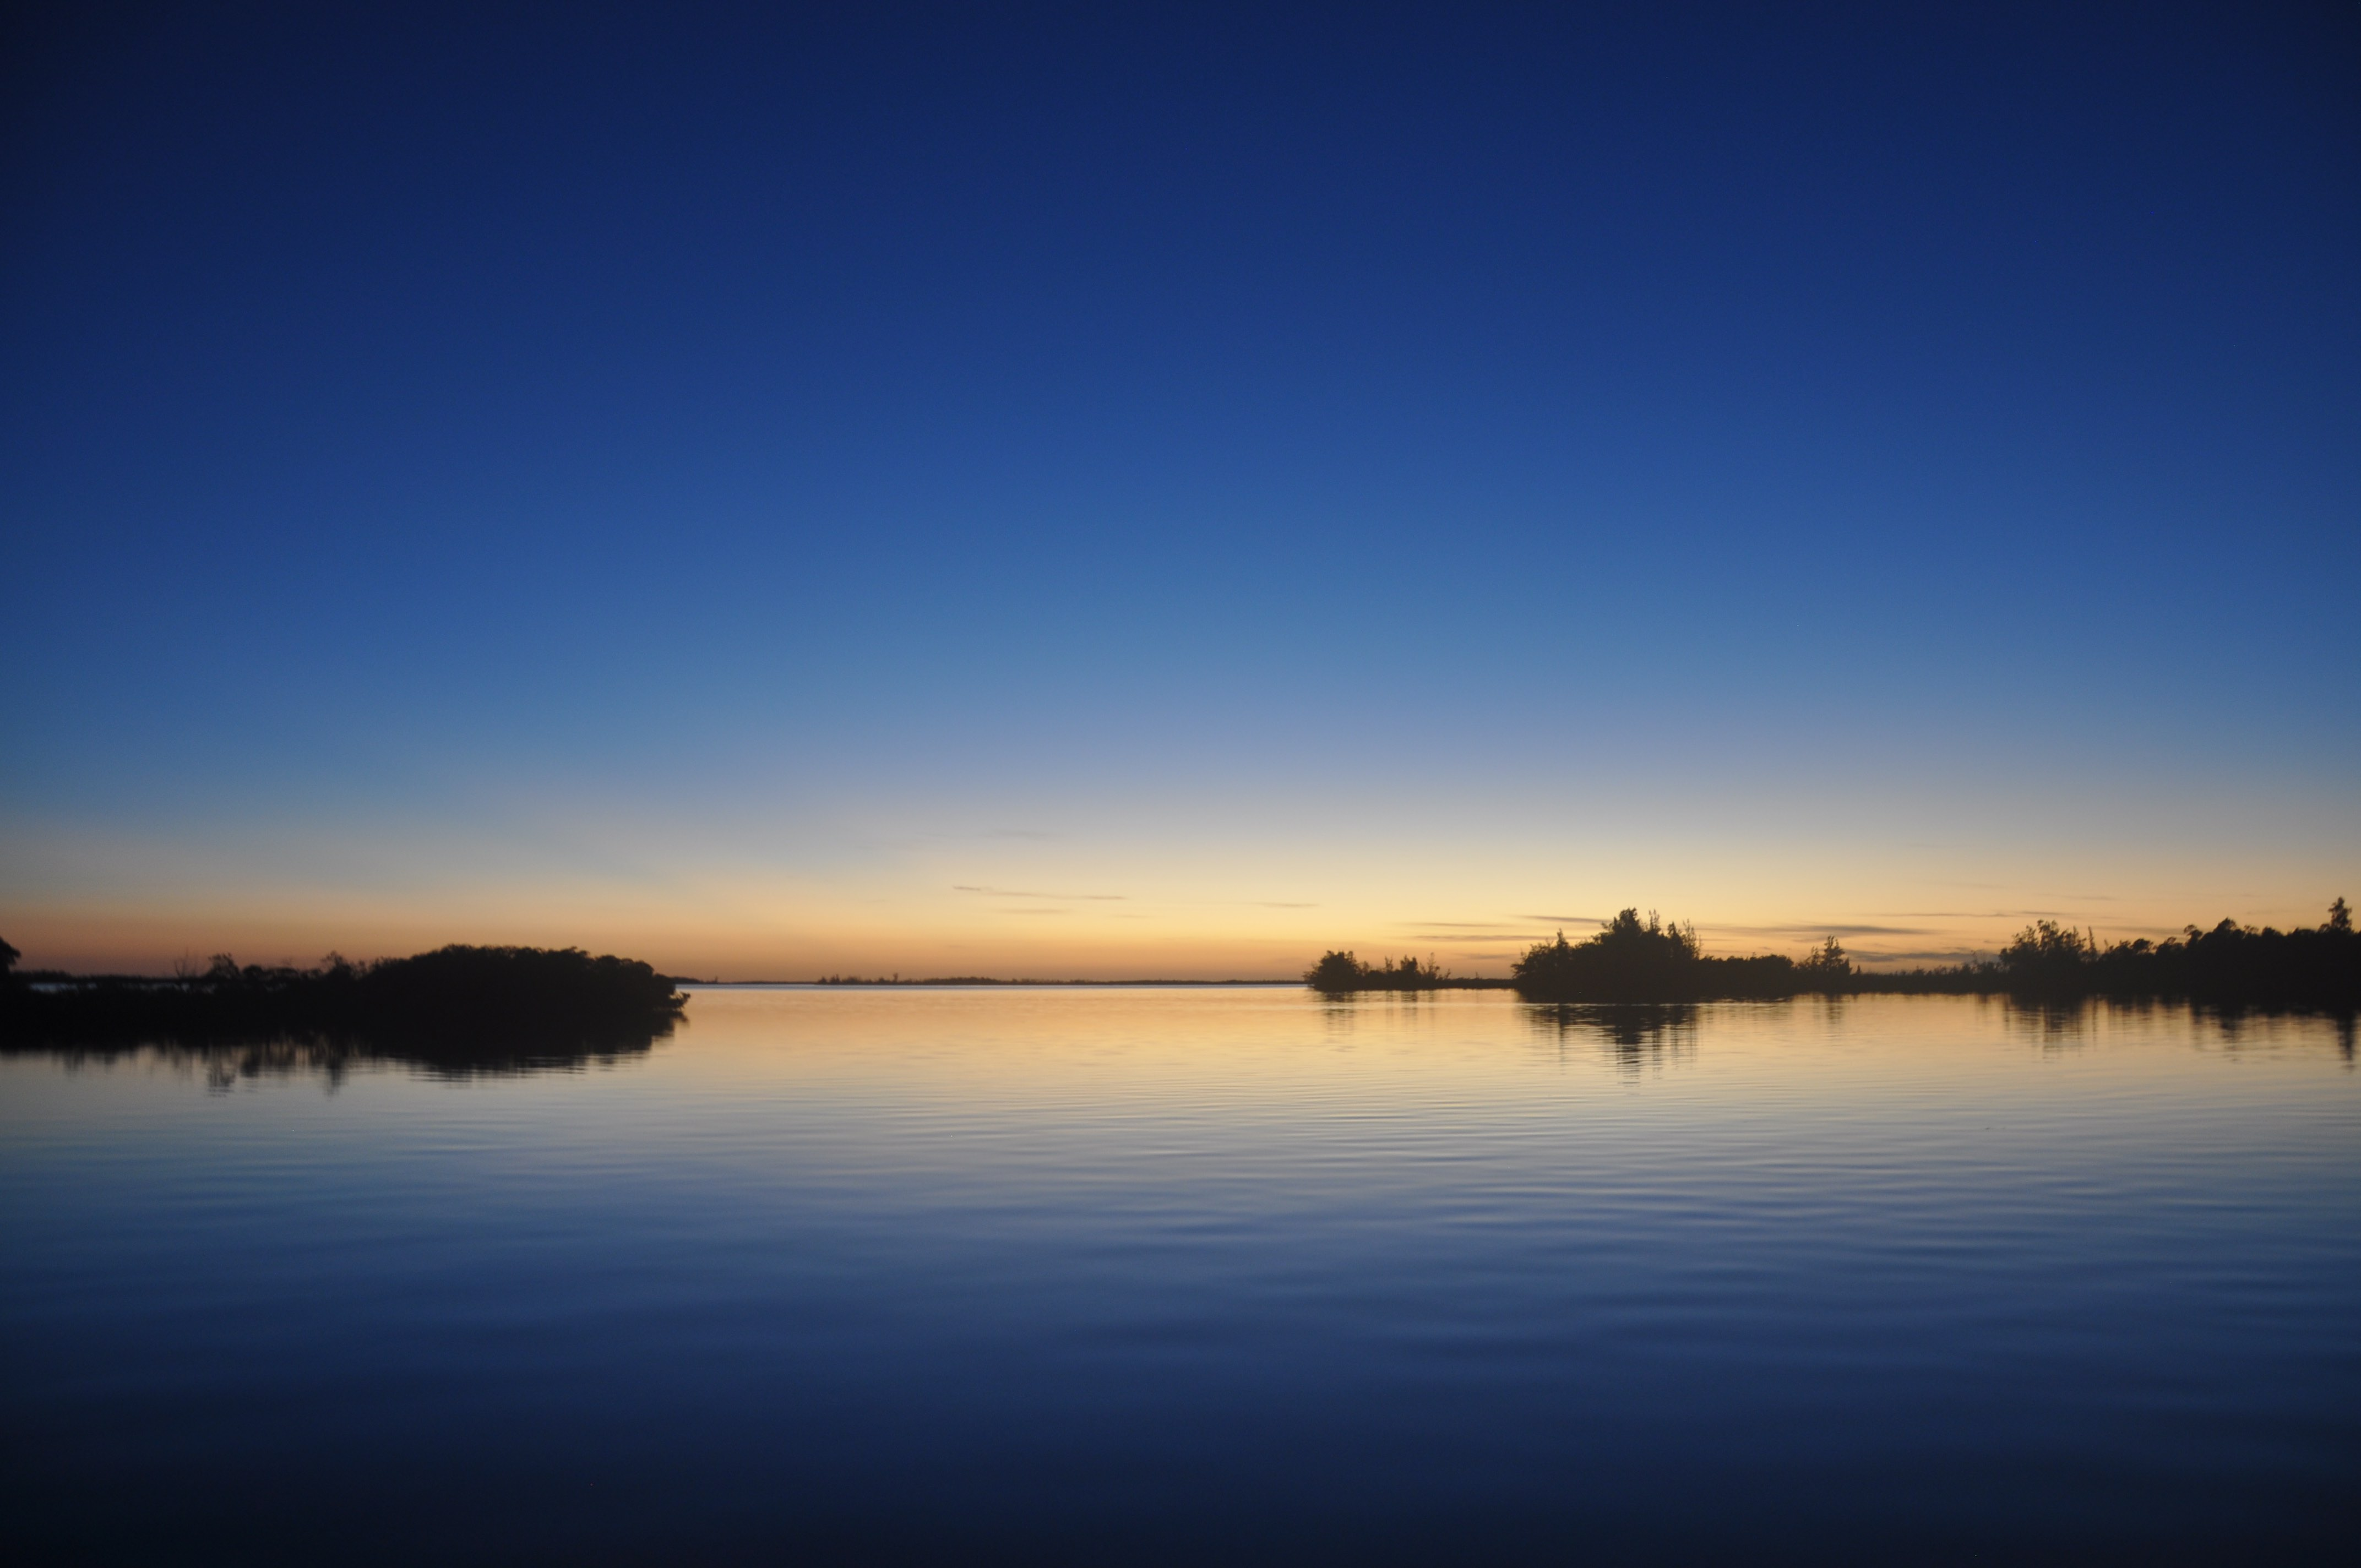 A sunset over water with dark blue, light orange, and silhouetted trees reflected.